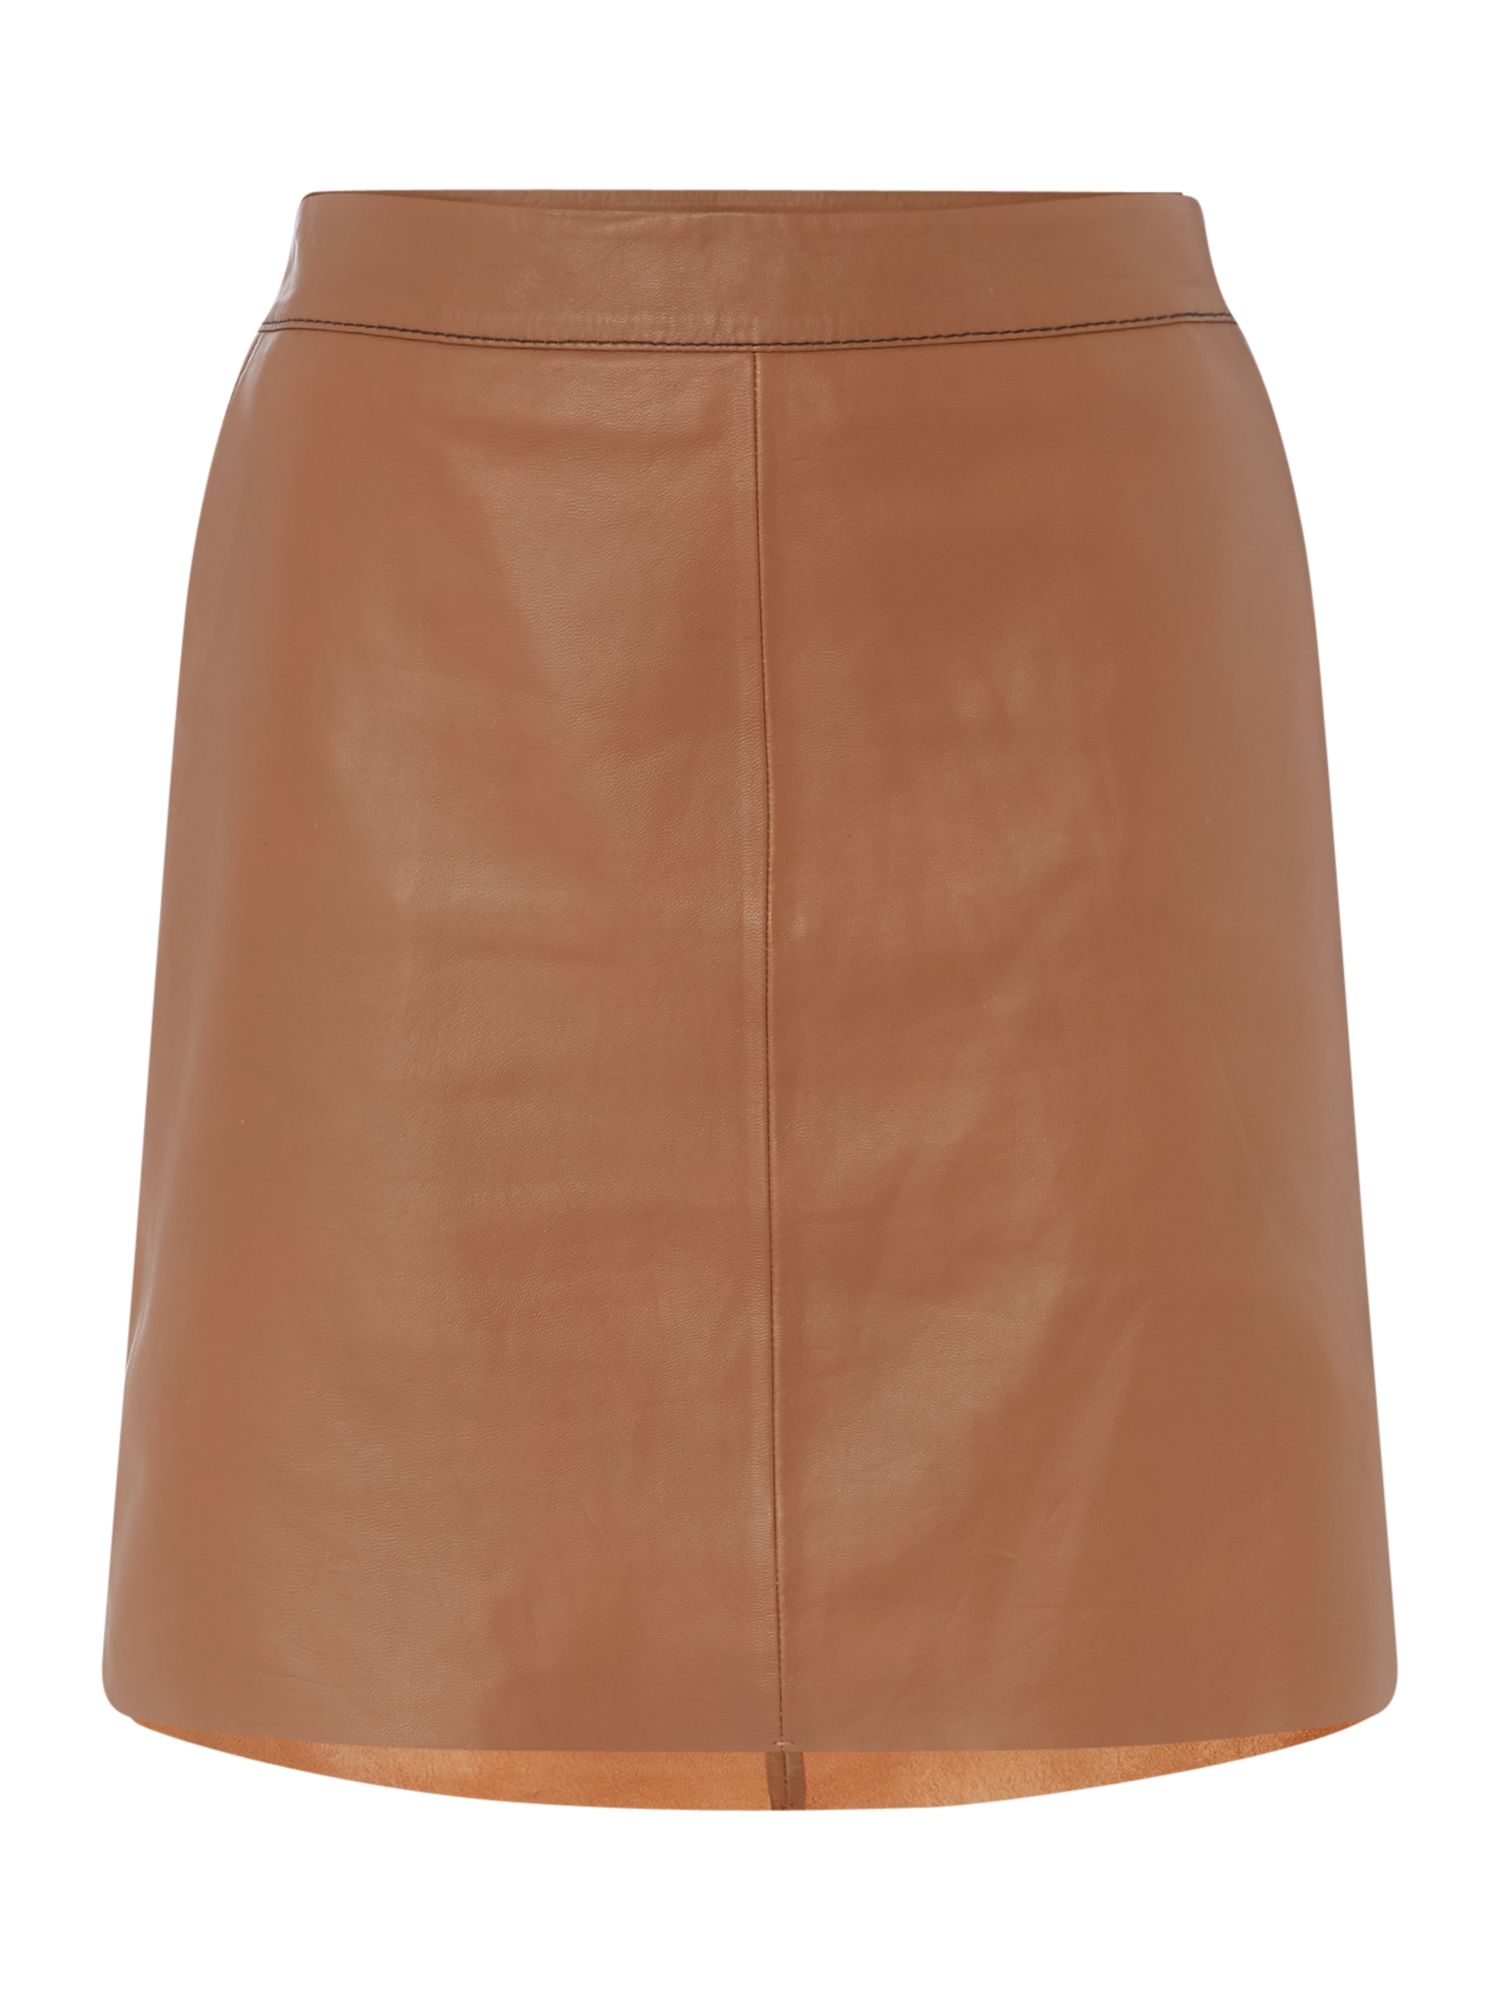 Maison De Nimes Leather Skirt, Tan